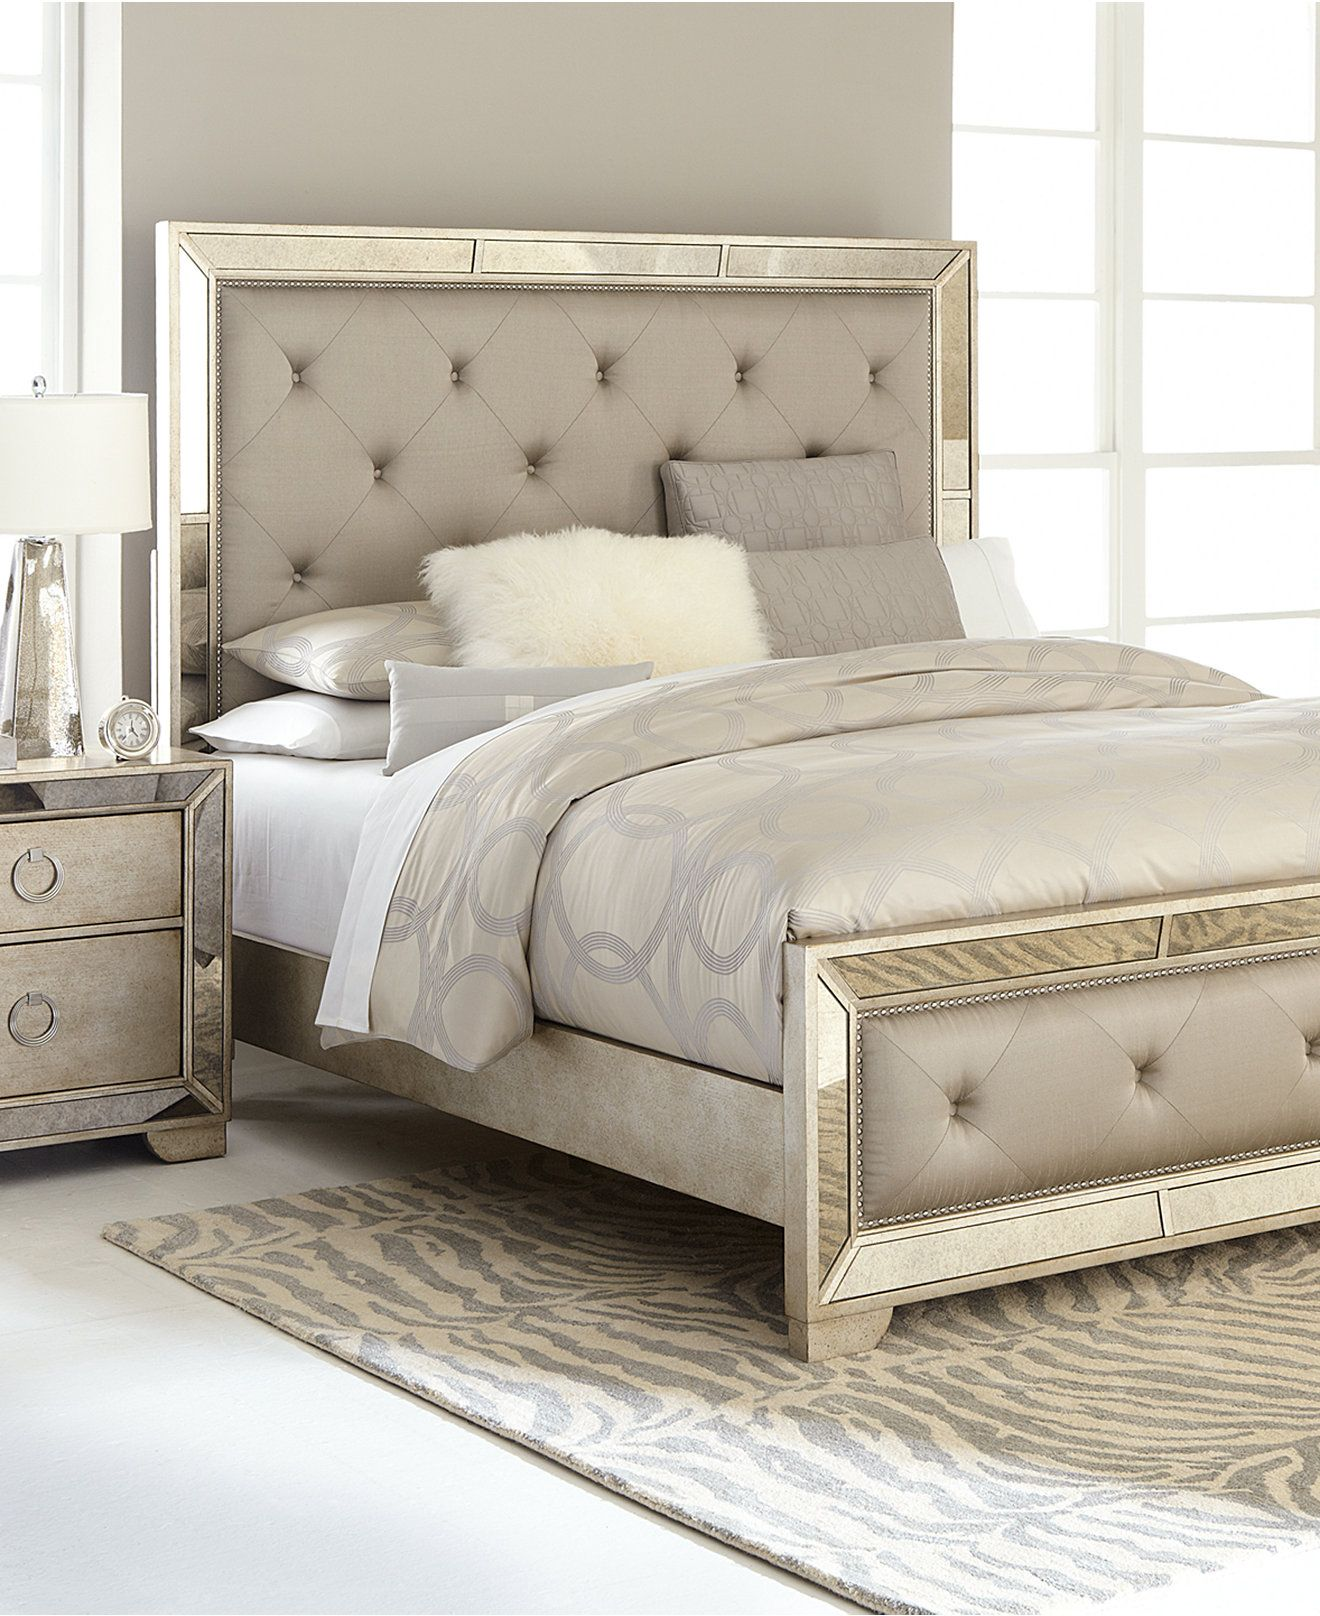 Elegant Ailey Bedroom Furniture Collection   Bedroom Furniture   Furniture   Macyu0027s